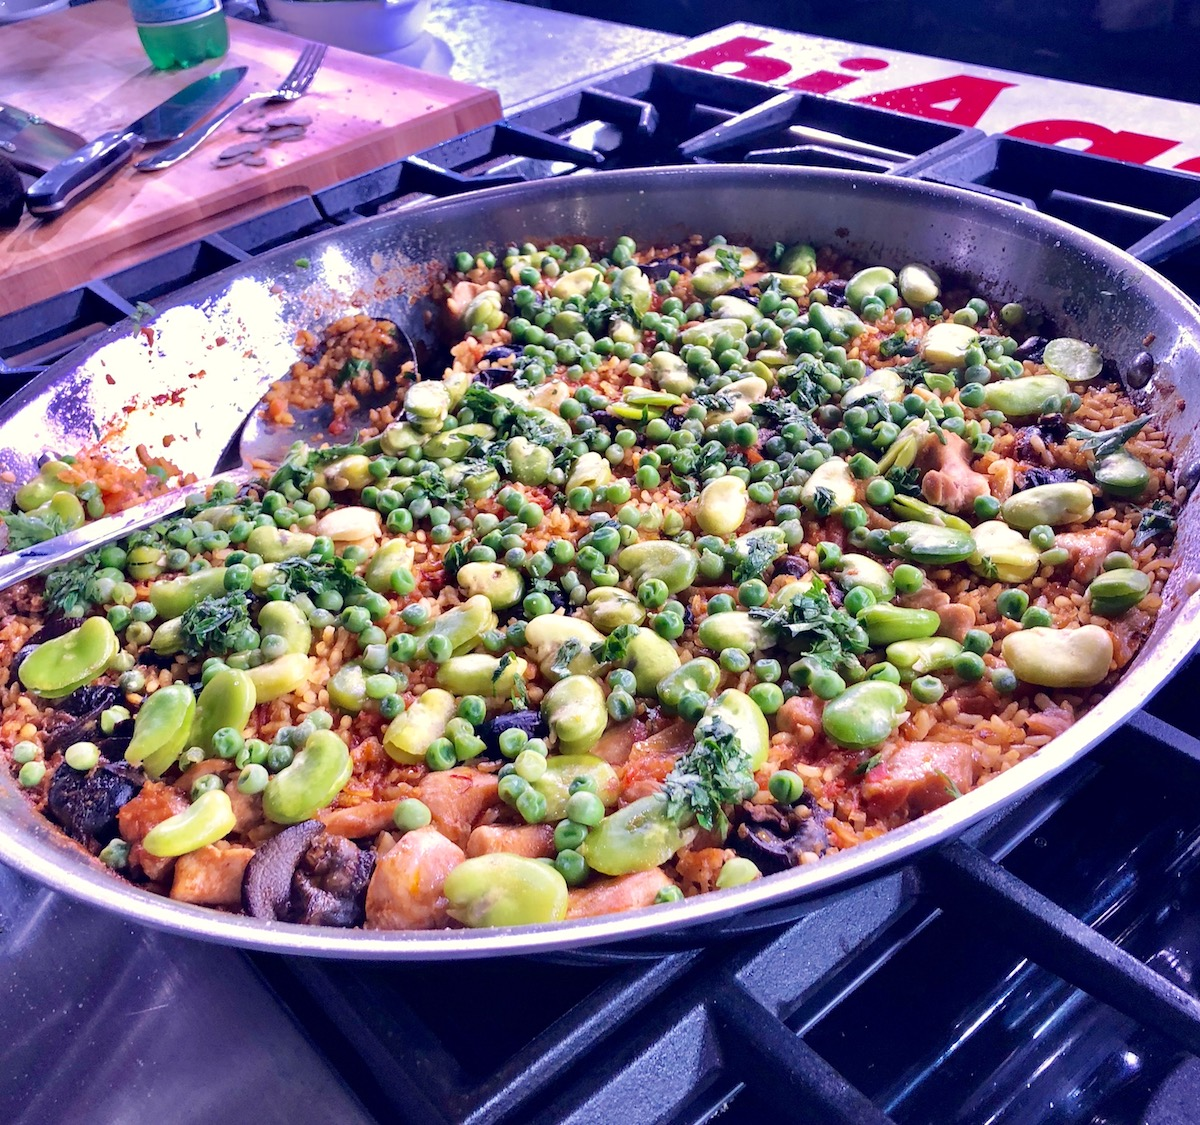 Chef Andrew Zimmern's Paella at Aspen Food and Wine Classic